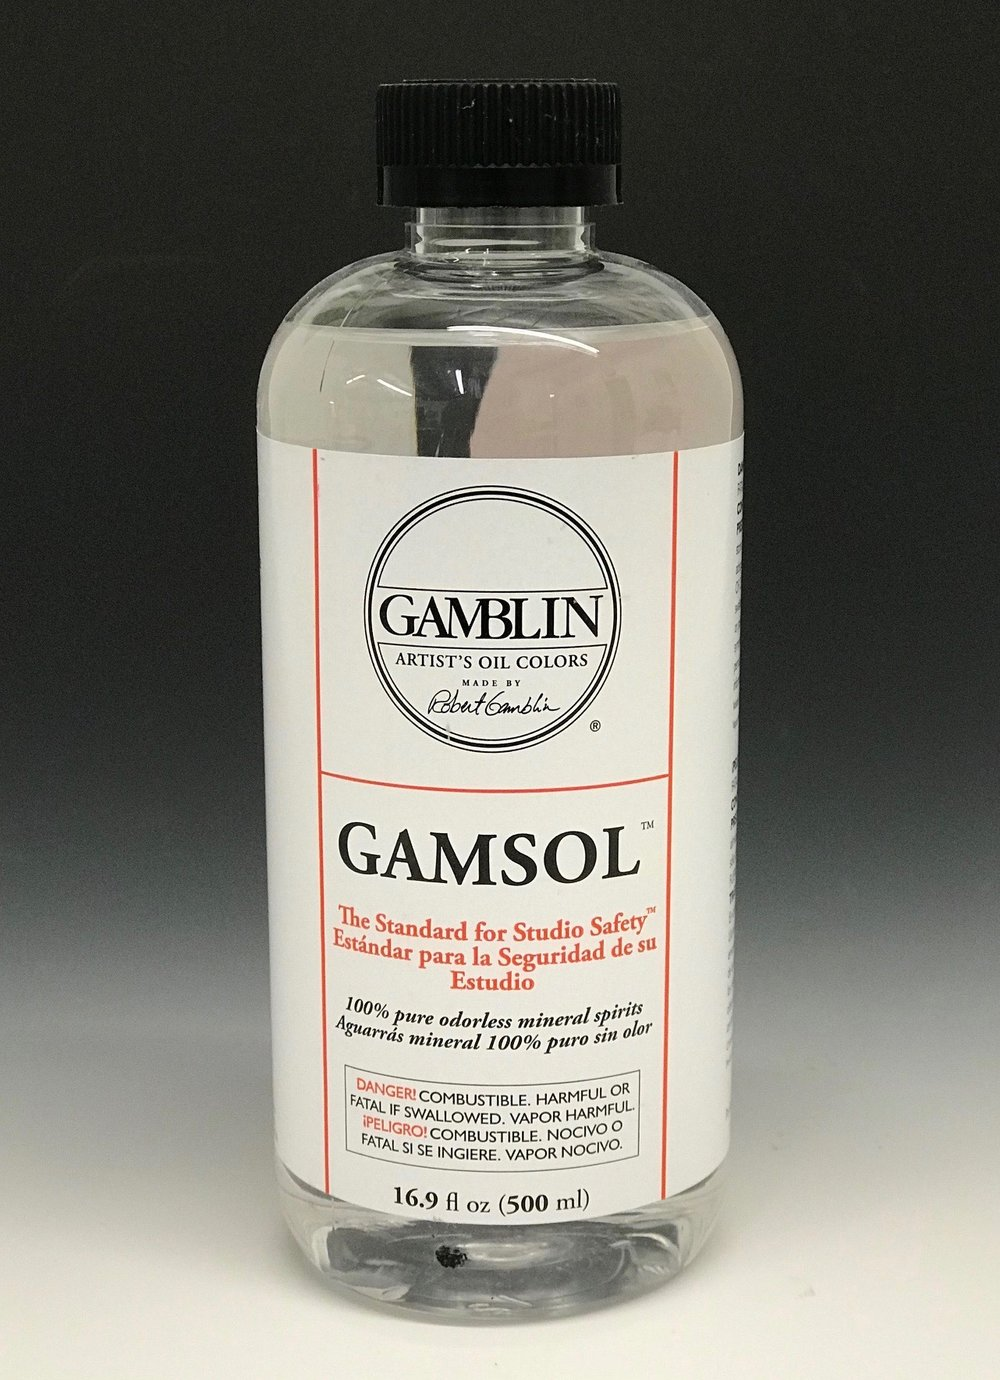 Thinner - To clean brushes we use Gamsol, a thinner similar to Turpentine or other odorless mineral spirits. To keep fumes to a minimum, Gamsol is the only thinner I allow in the studio.